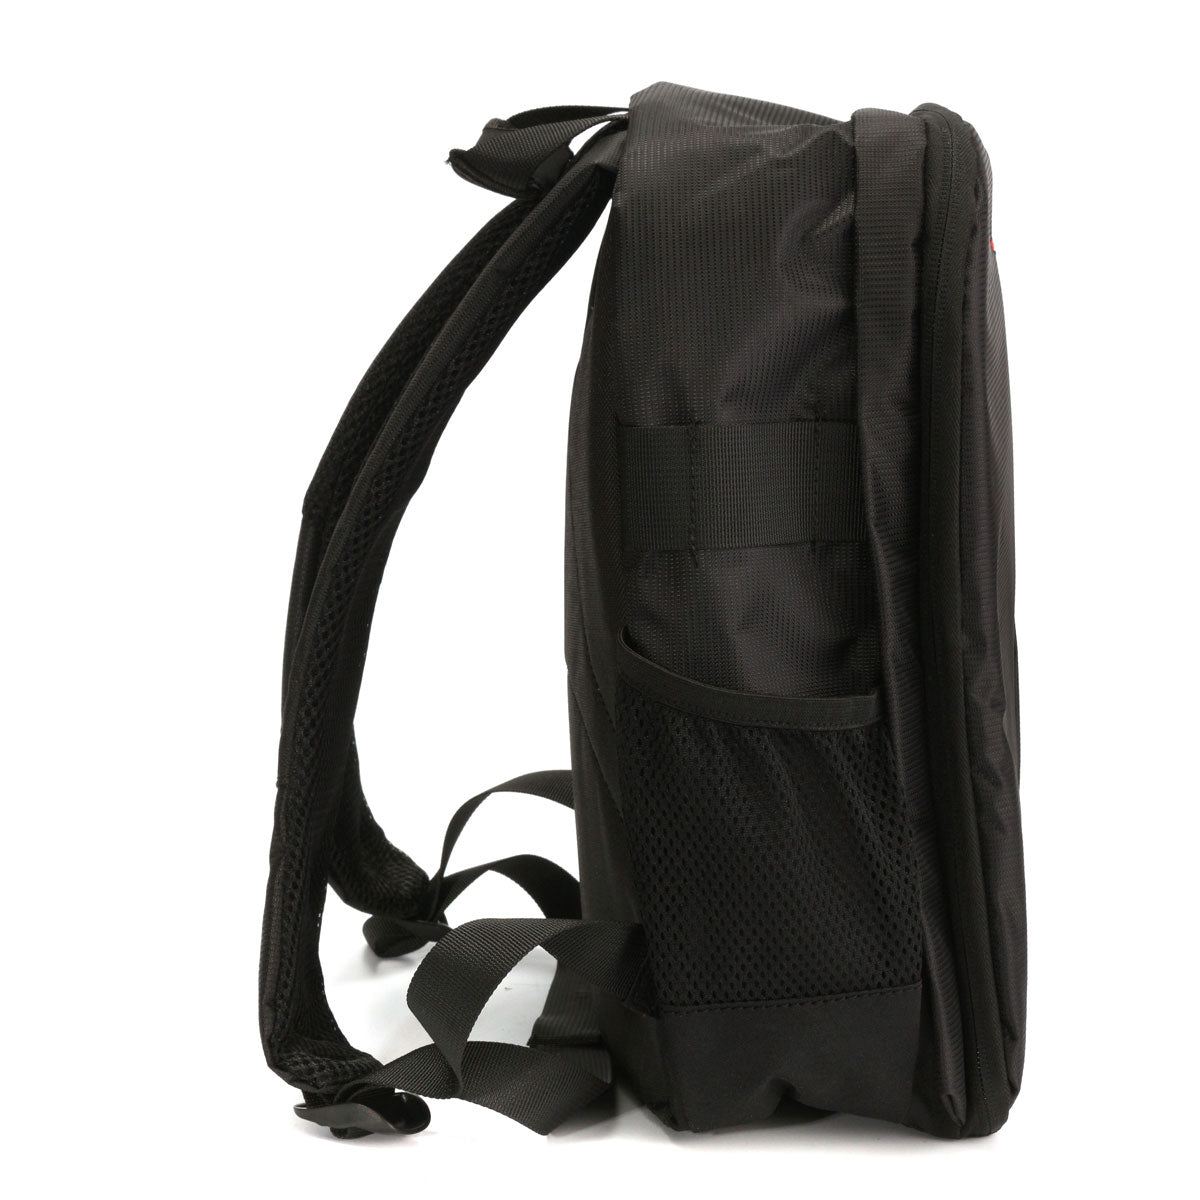 Waterproof Backpack Rucksack Case Bag for DSLR Caerma